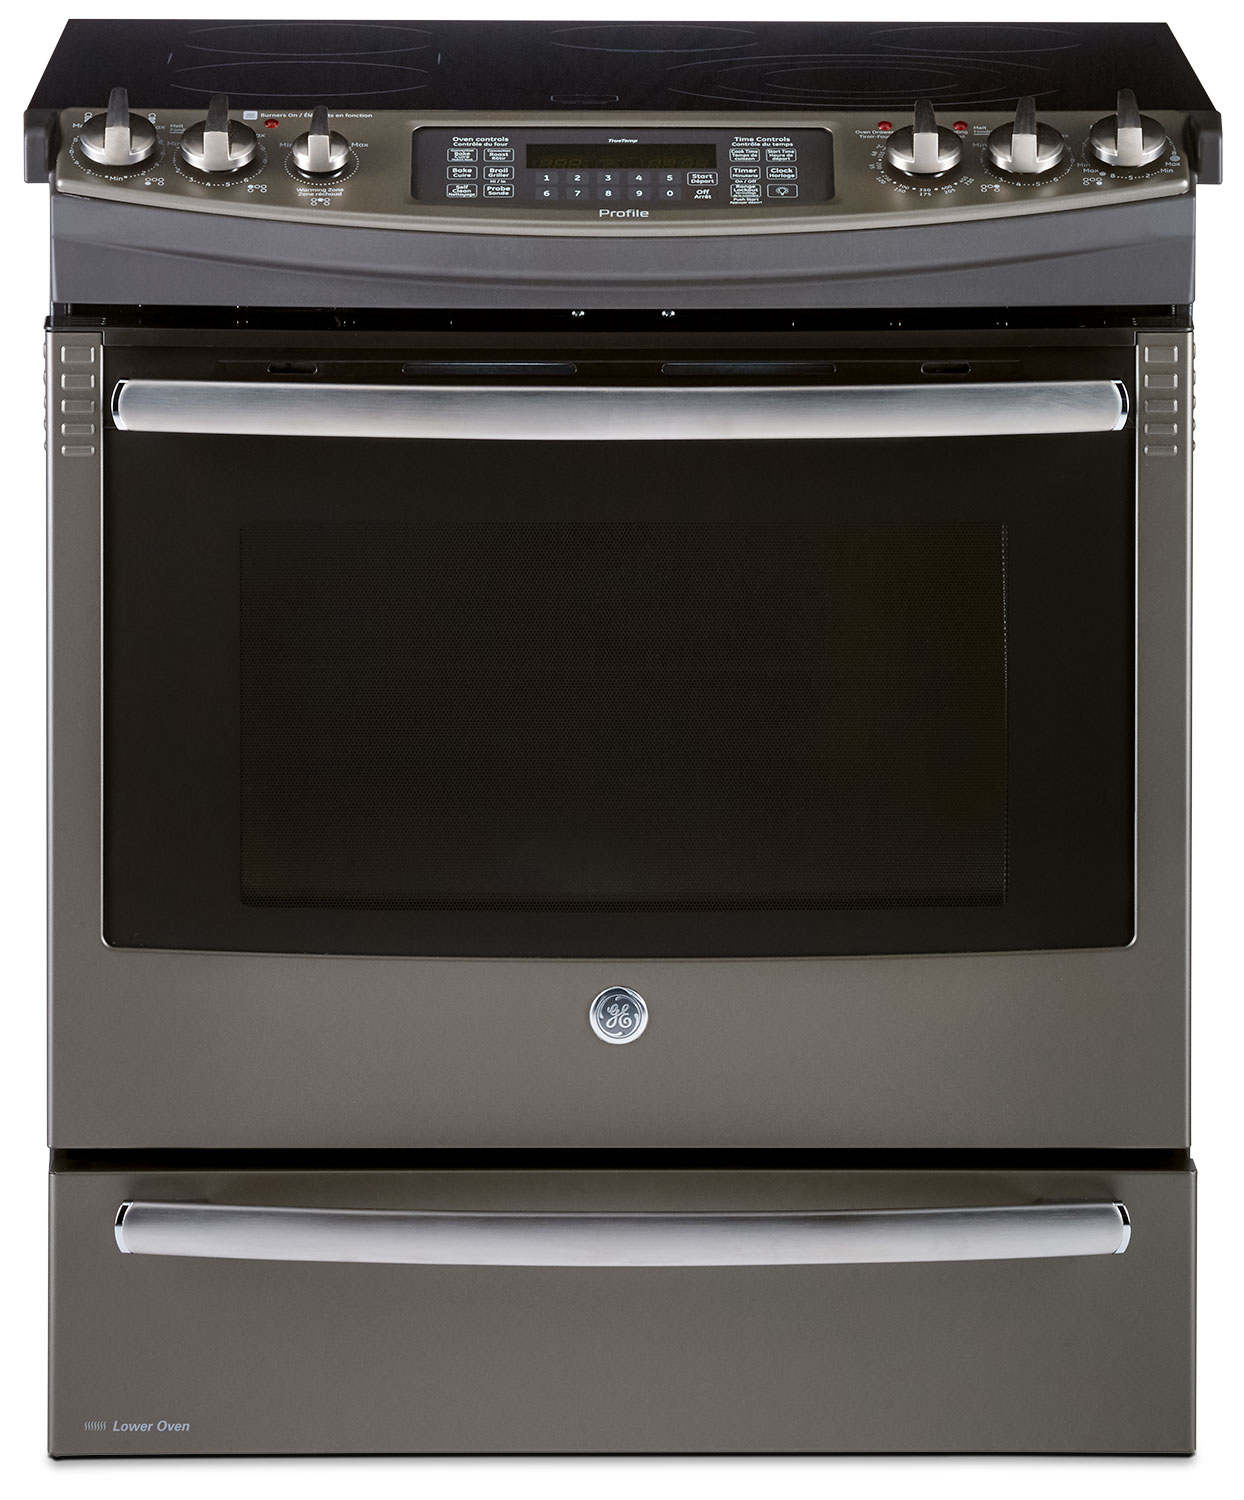 Cooking Products - GE 6.6 Cu. Ft. Slide-In Electric Range with Baking Drawer – PCS940EJES